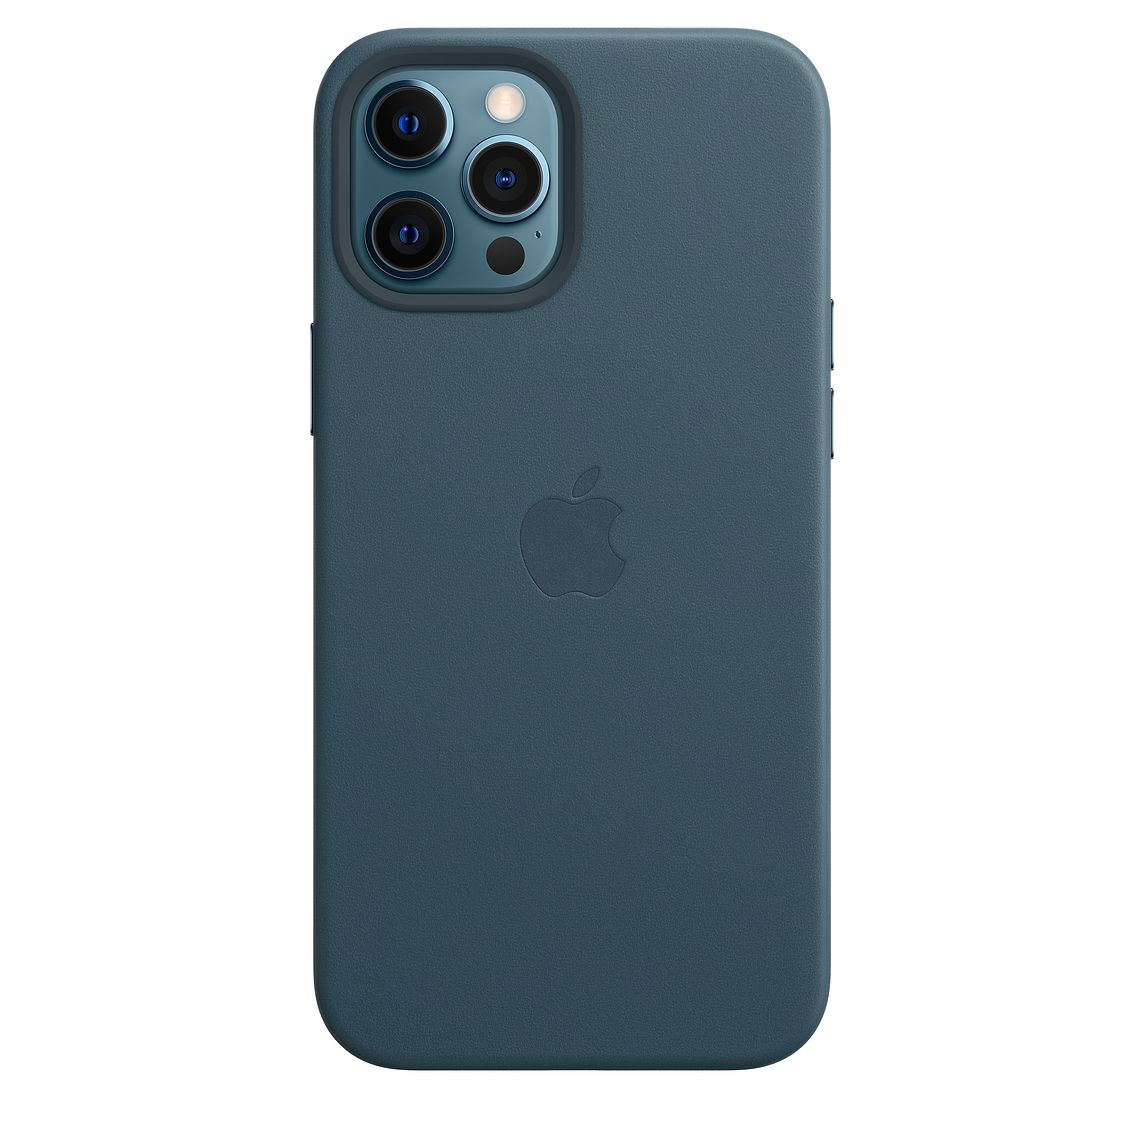 Apple iPhone 12 Pro Max Leather Case with MagSafe Baltic Blue